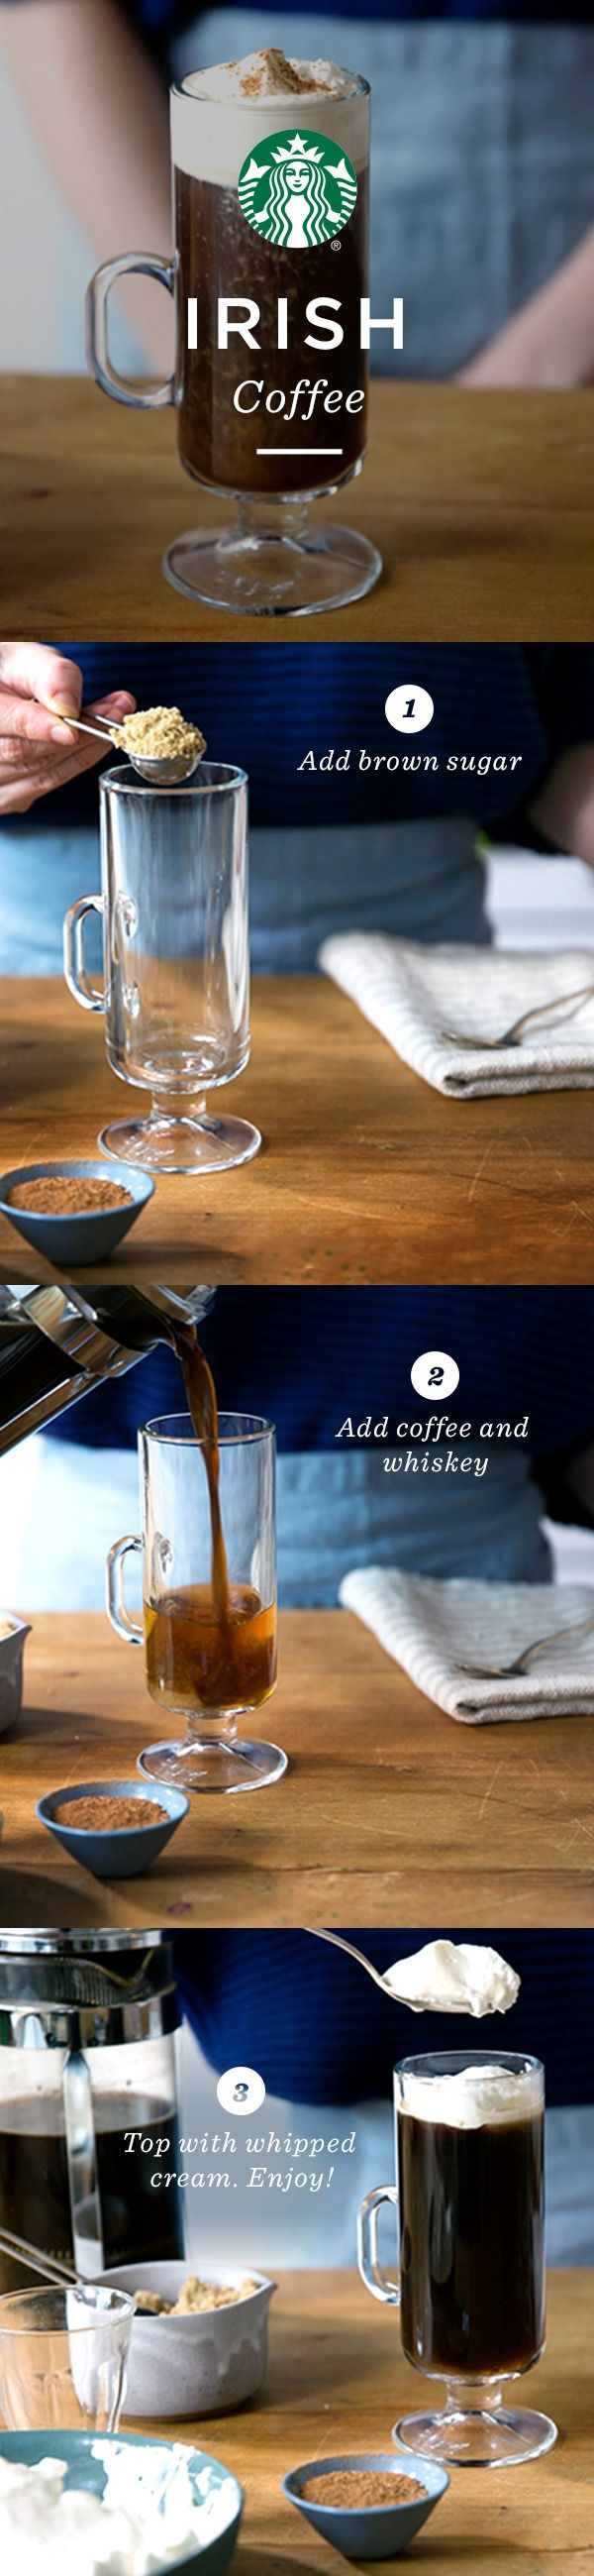 Irish Coffee recipe. In a tall glass, add 1 Tbsp brown sugar, 1.5-2 fl oz whiskey (depending on how strong you like it), and 1 cup brewed coffee (try Starbucks Sumatra ground coffee). Mix well. Top with whipped cream. Sprinkle nutmeg on top. Repeat steps for all four glasses. Serve and enjoy.